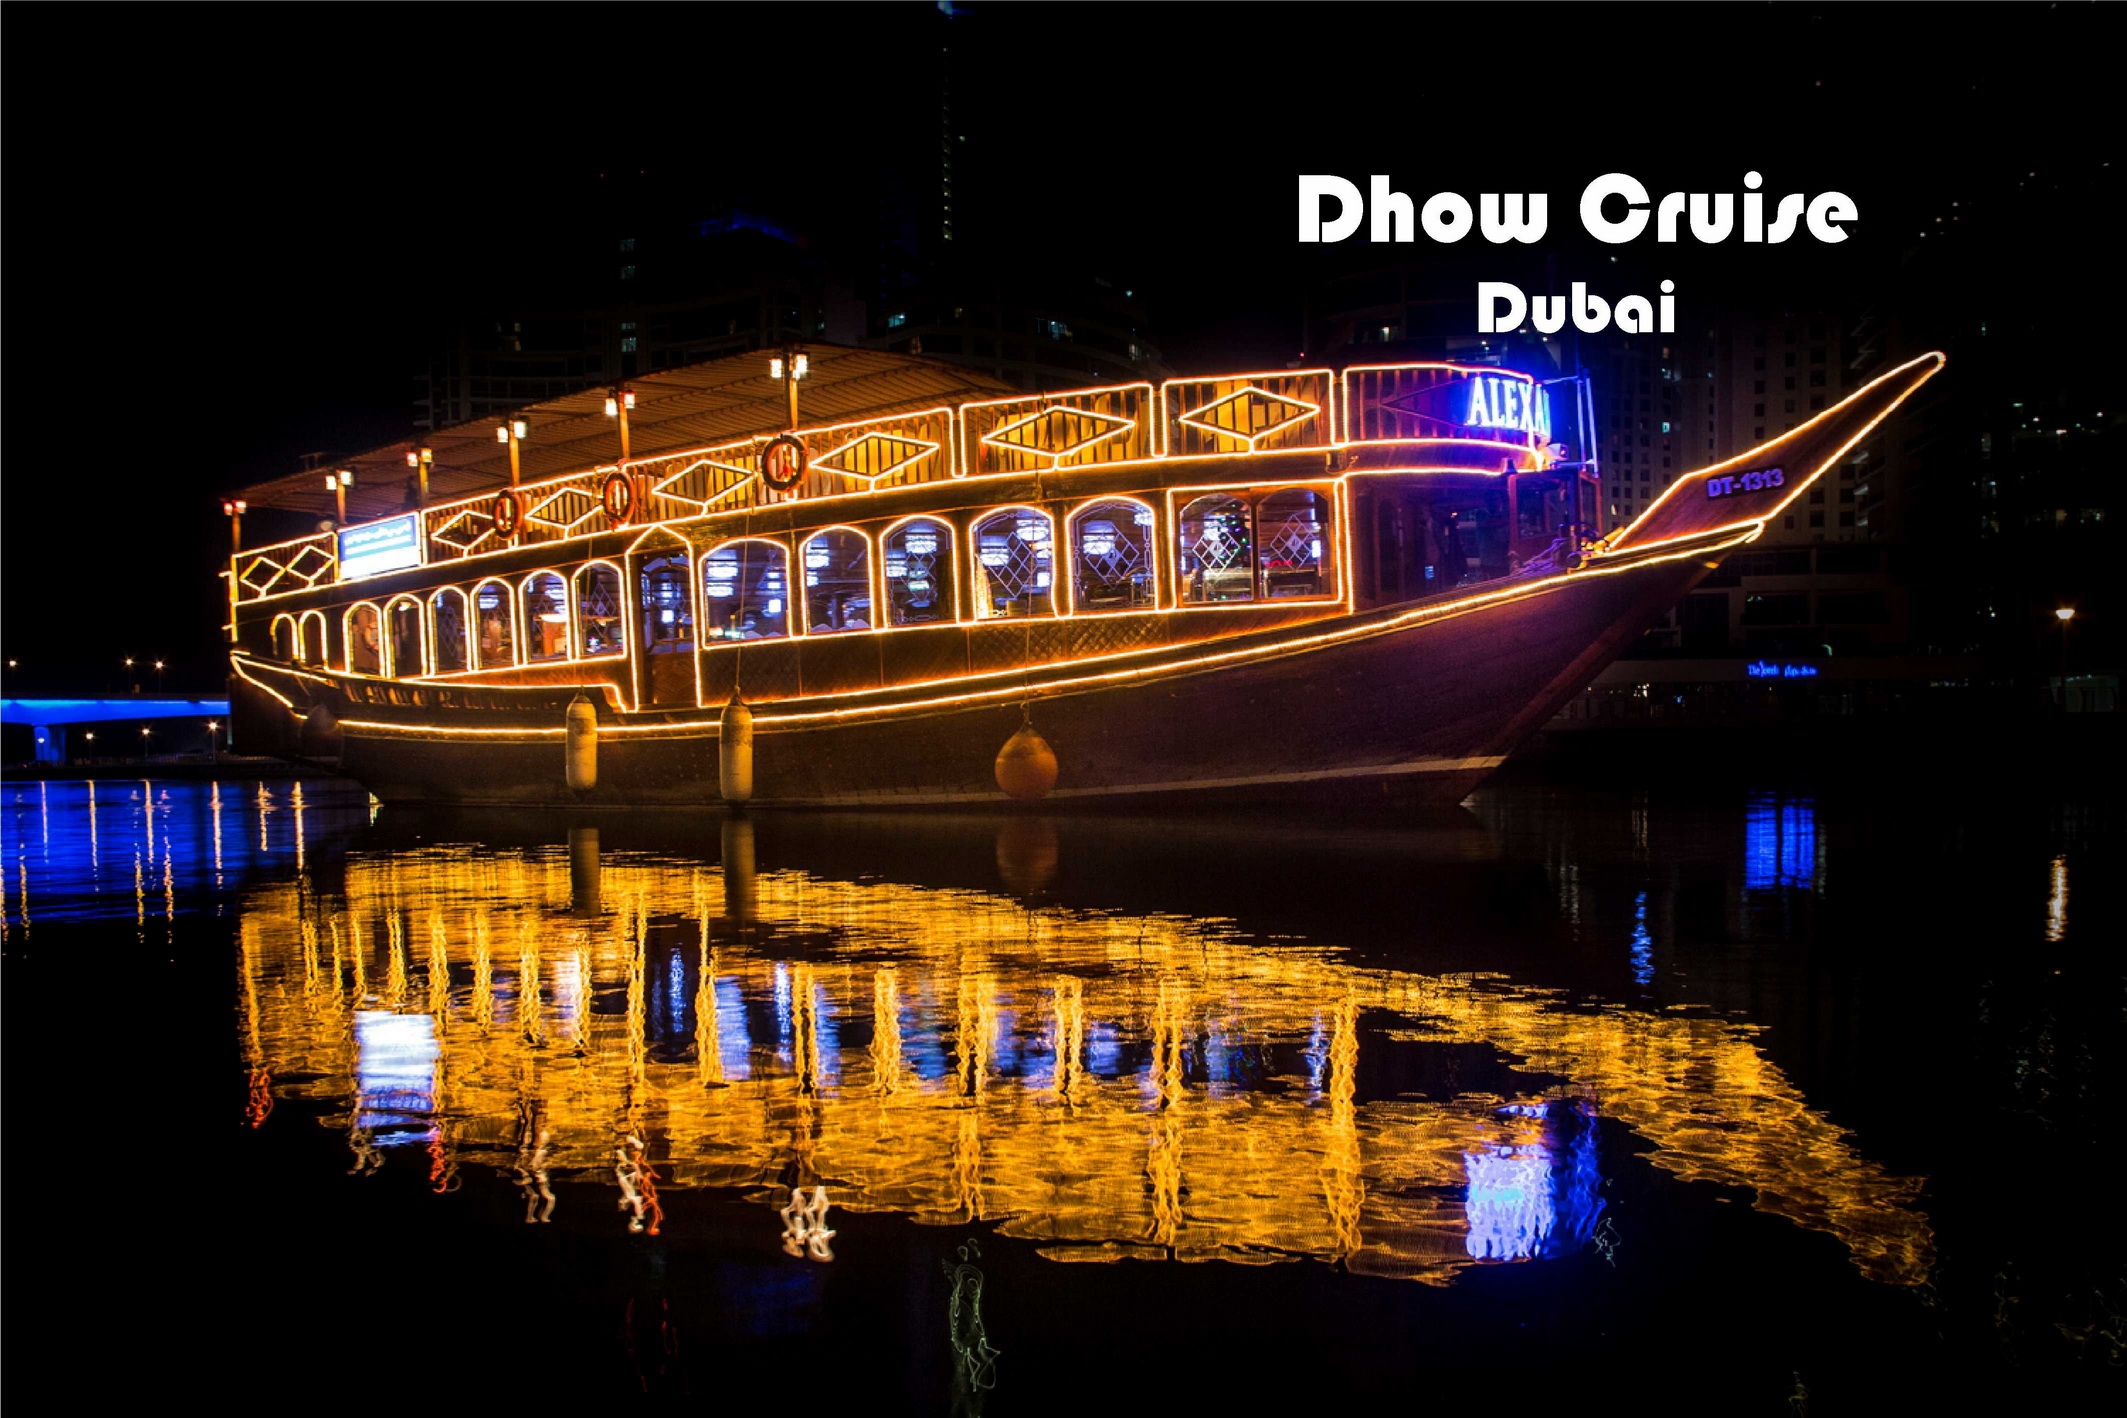 dhow-cruise2